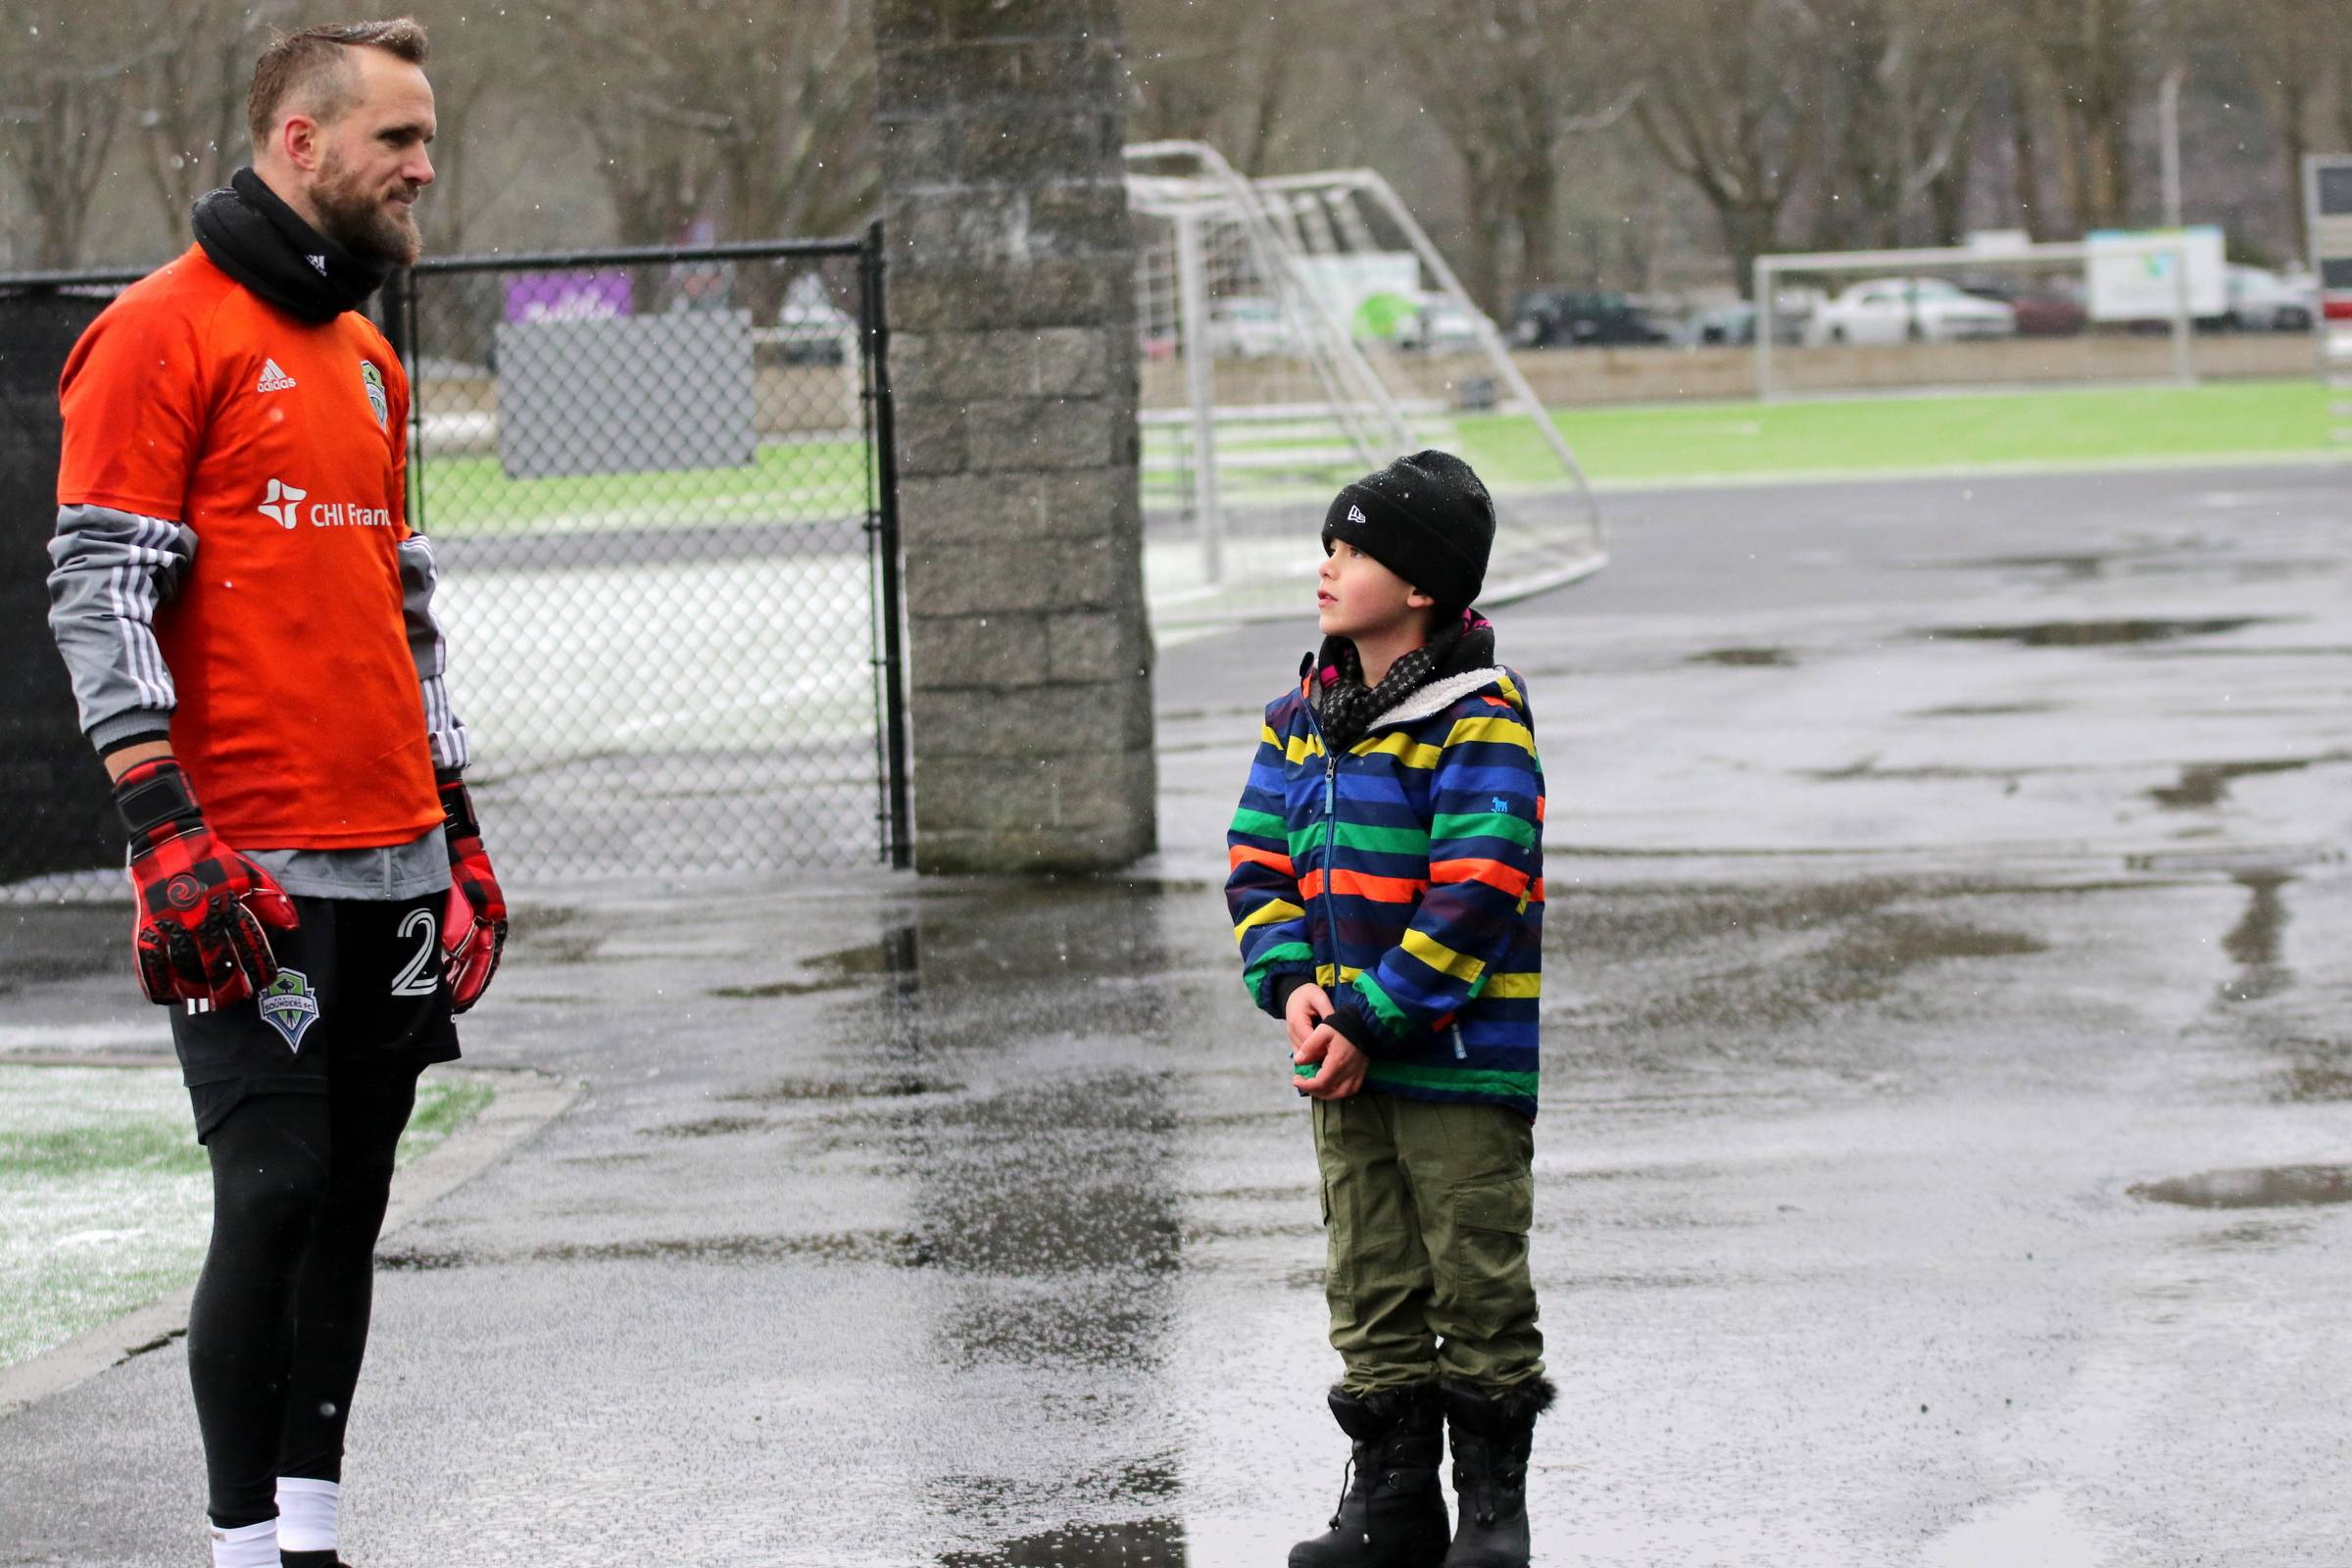 Stefan Frei (#24) talks with fans after practice and meets one aspiring future goalkeeper